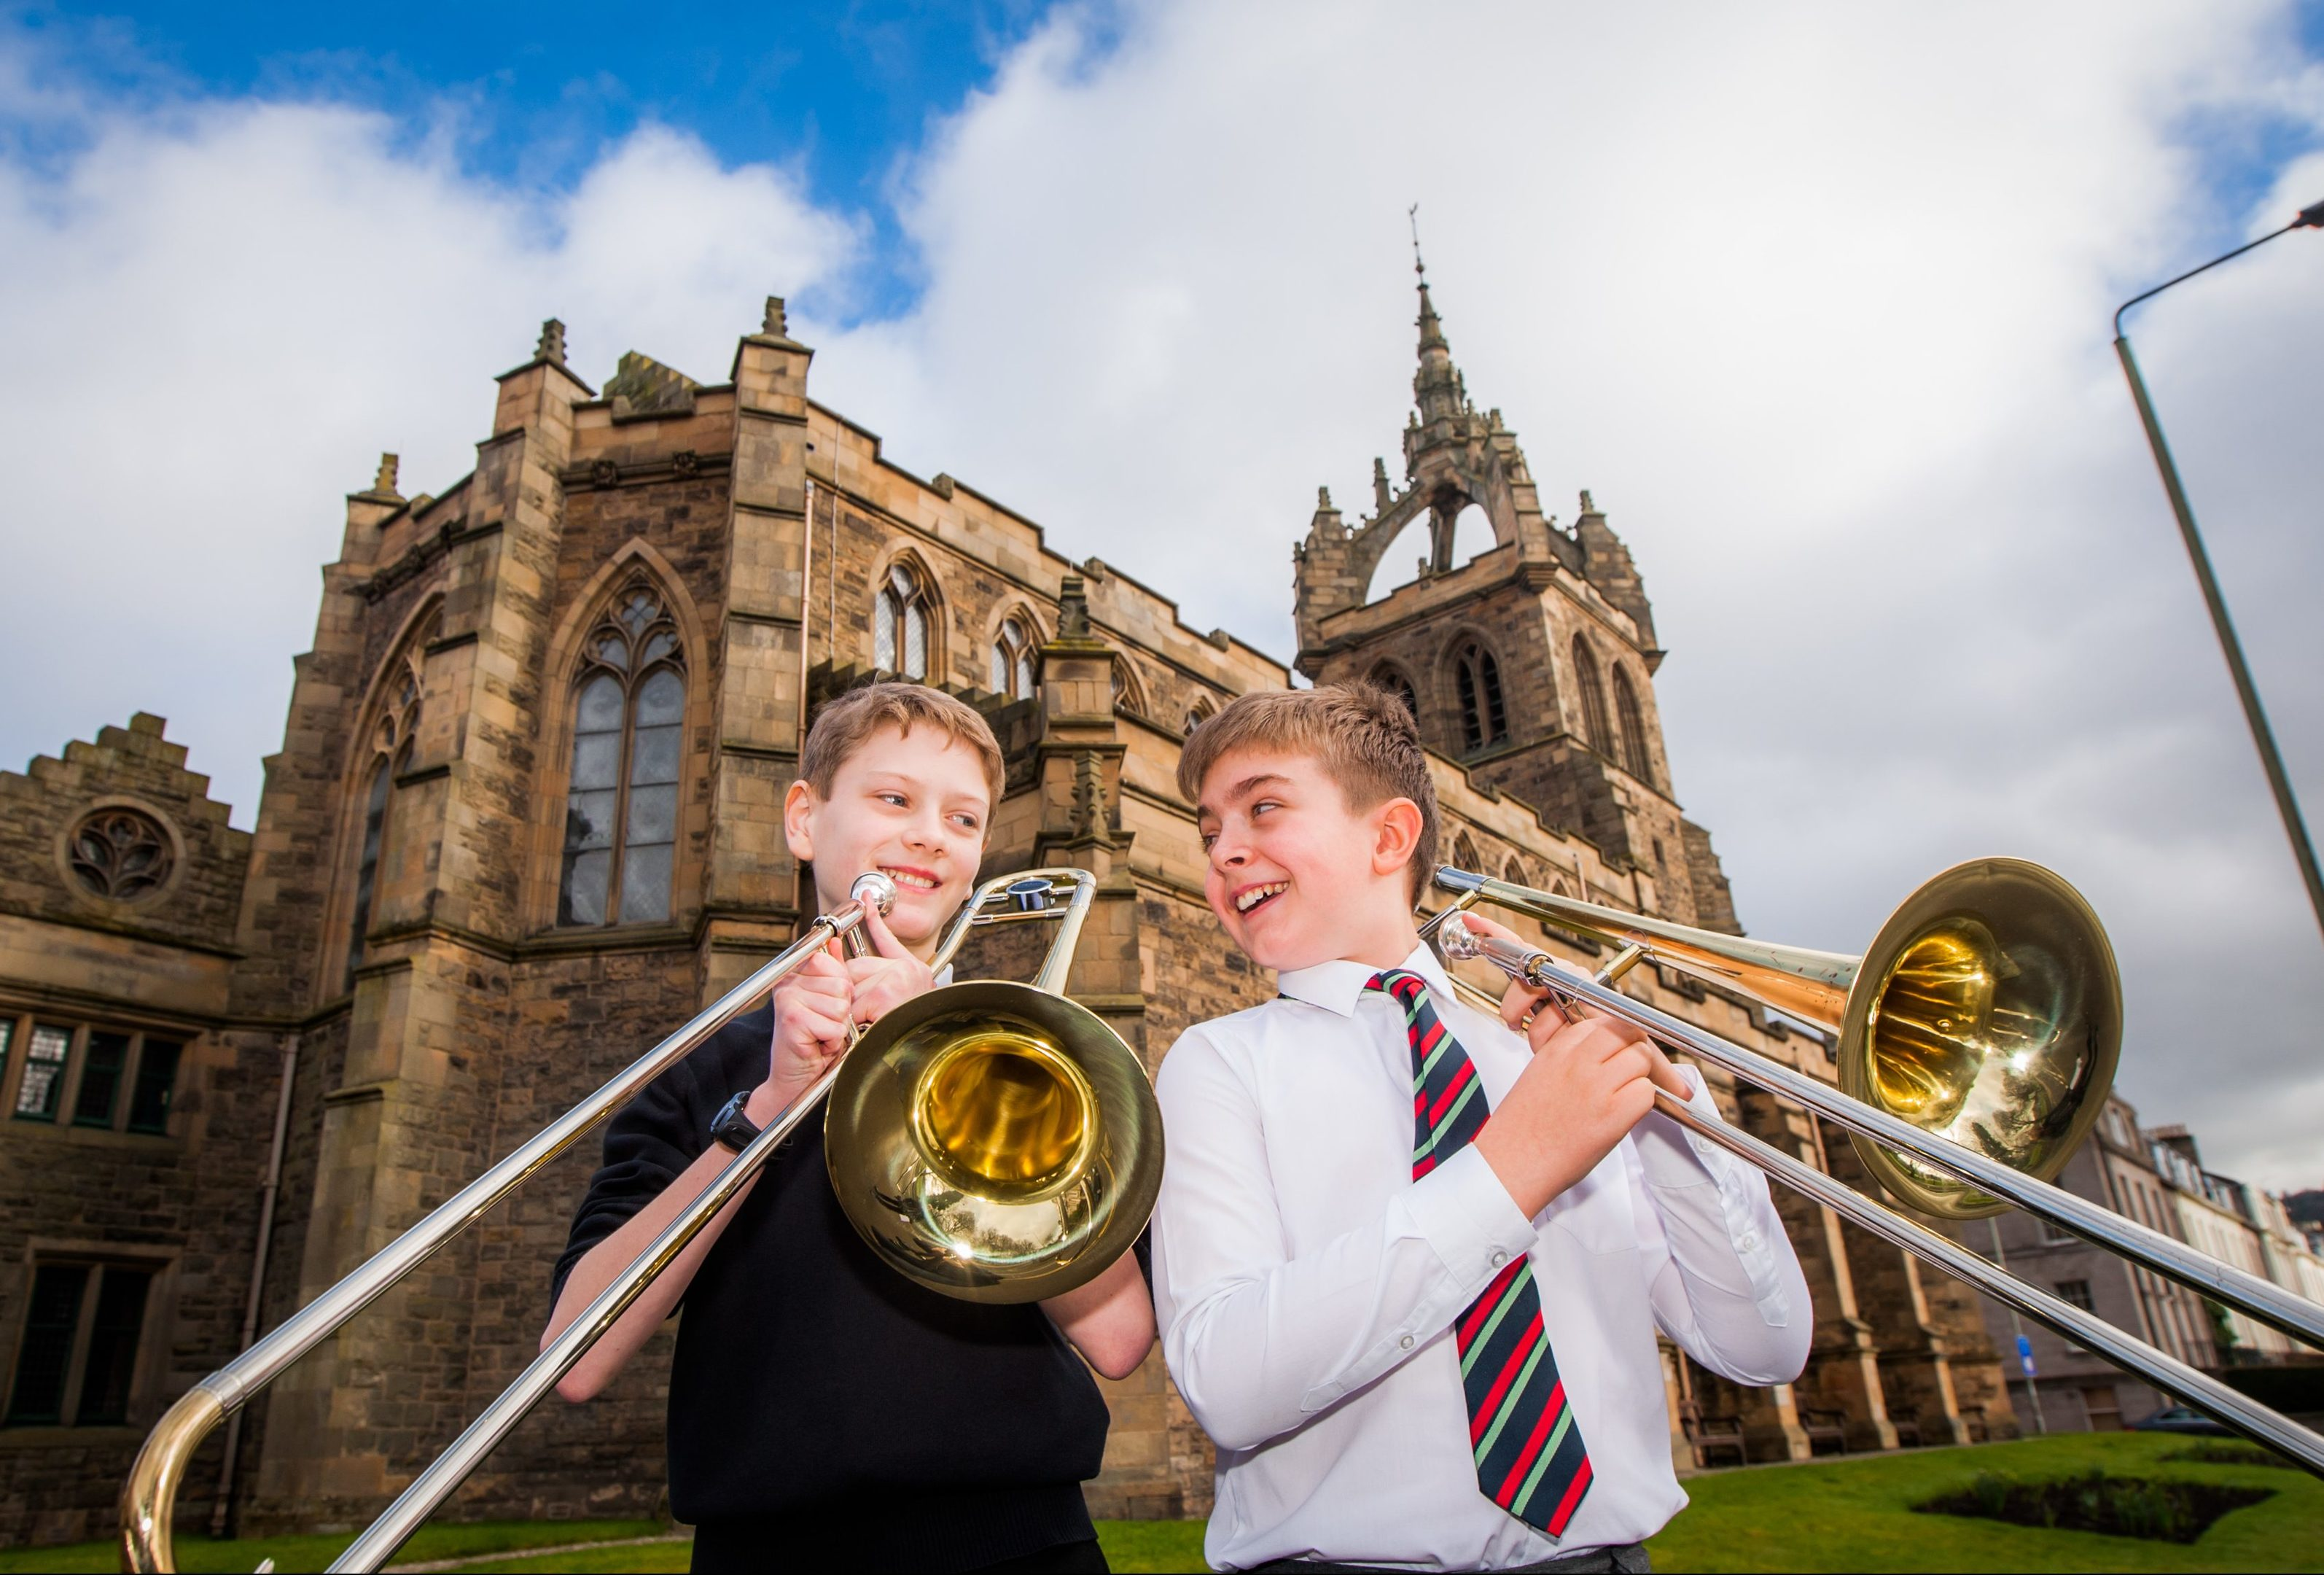 Elliot Soreide (Perth High School, left) and Leo Rodger (RDM Primary School, right) who took part in the trombone solo, elementary class.